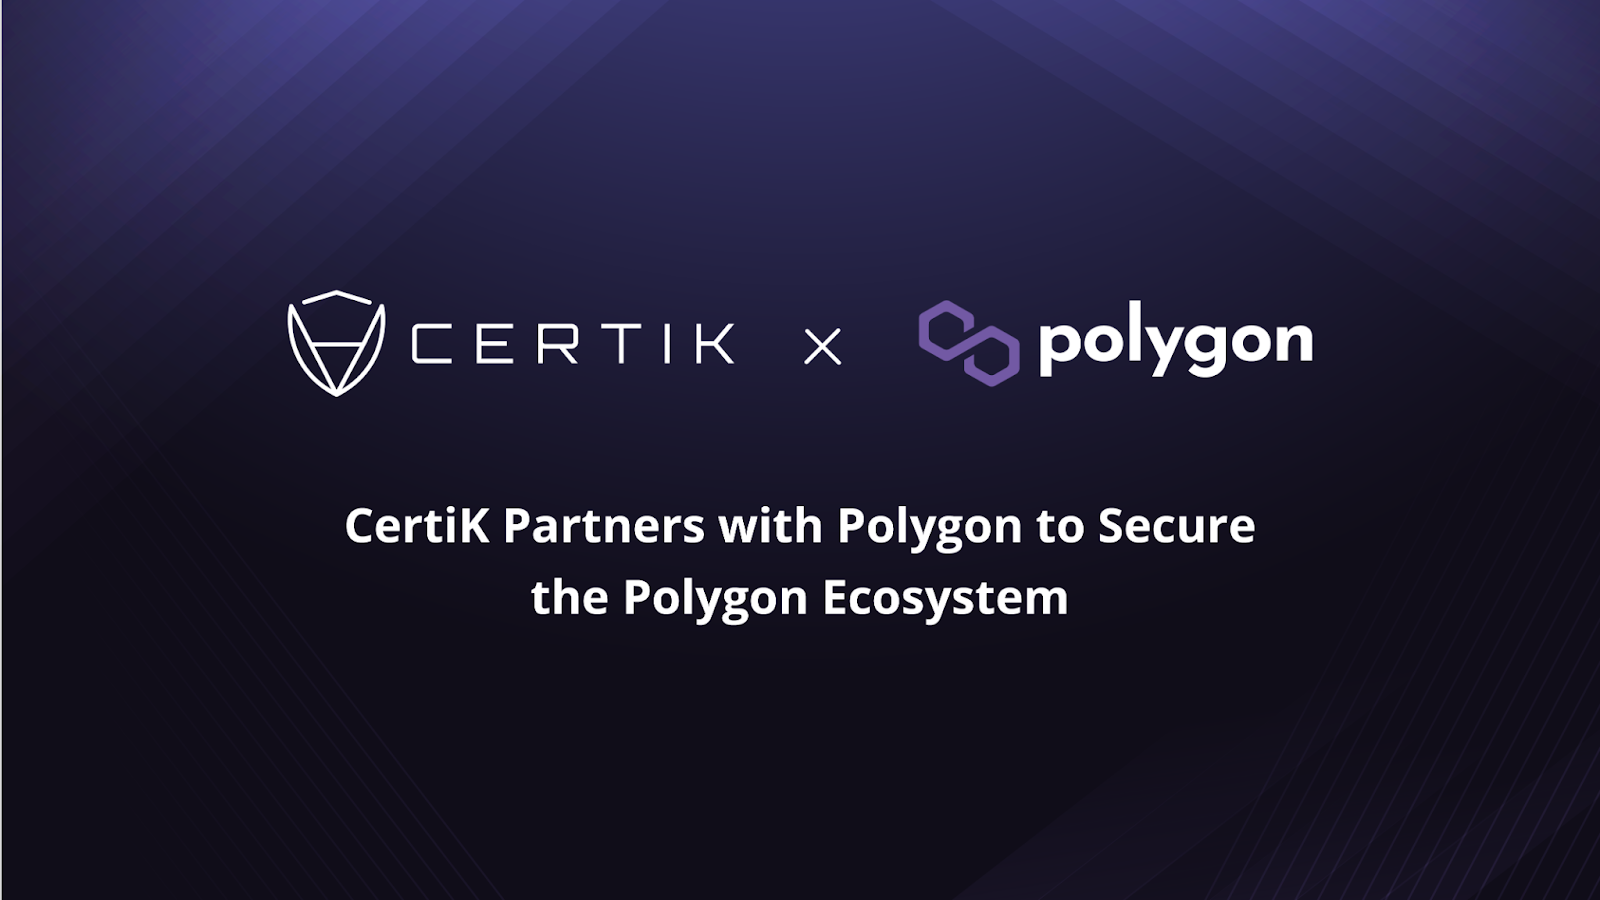 CertiK Partners with Polygon to Secure the Polygon Ecosystem